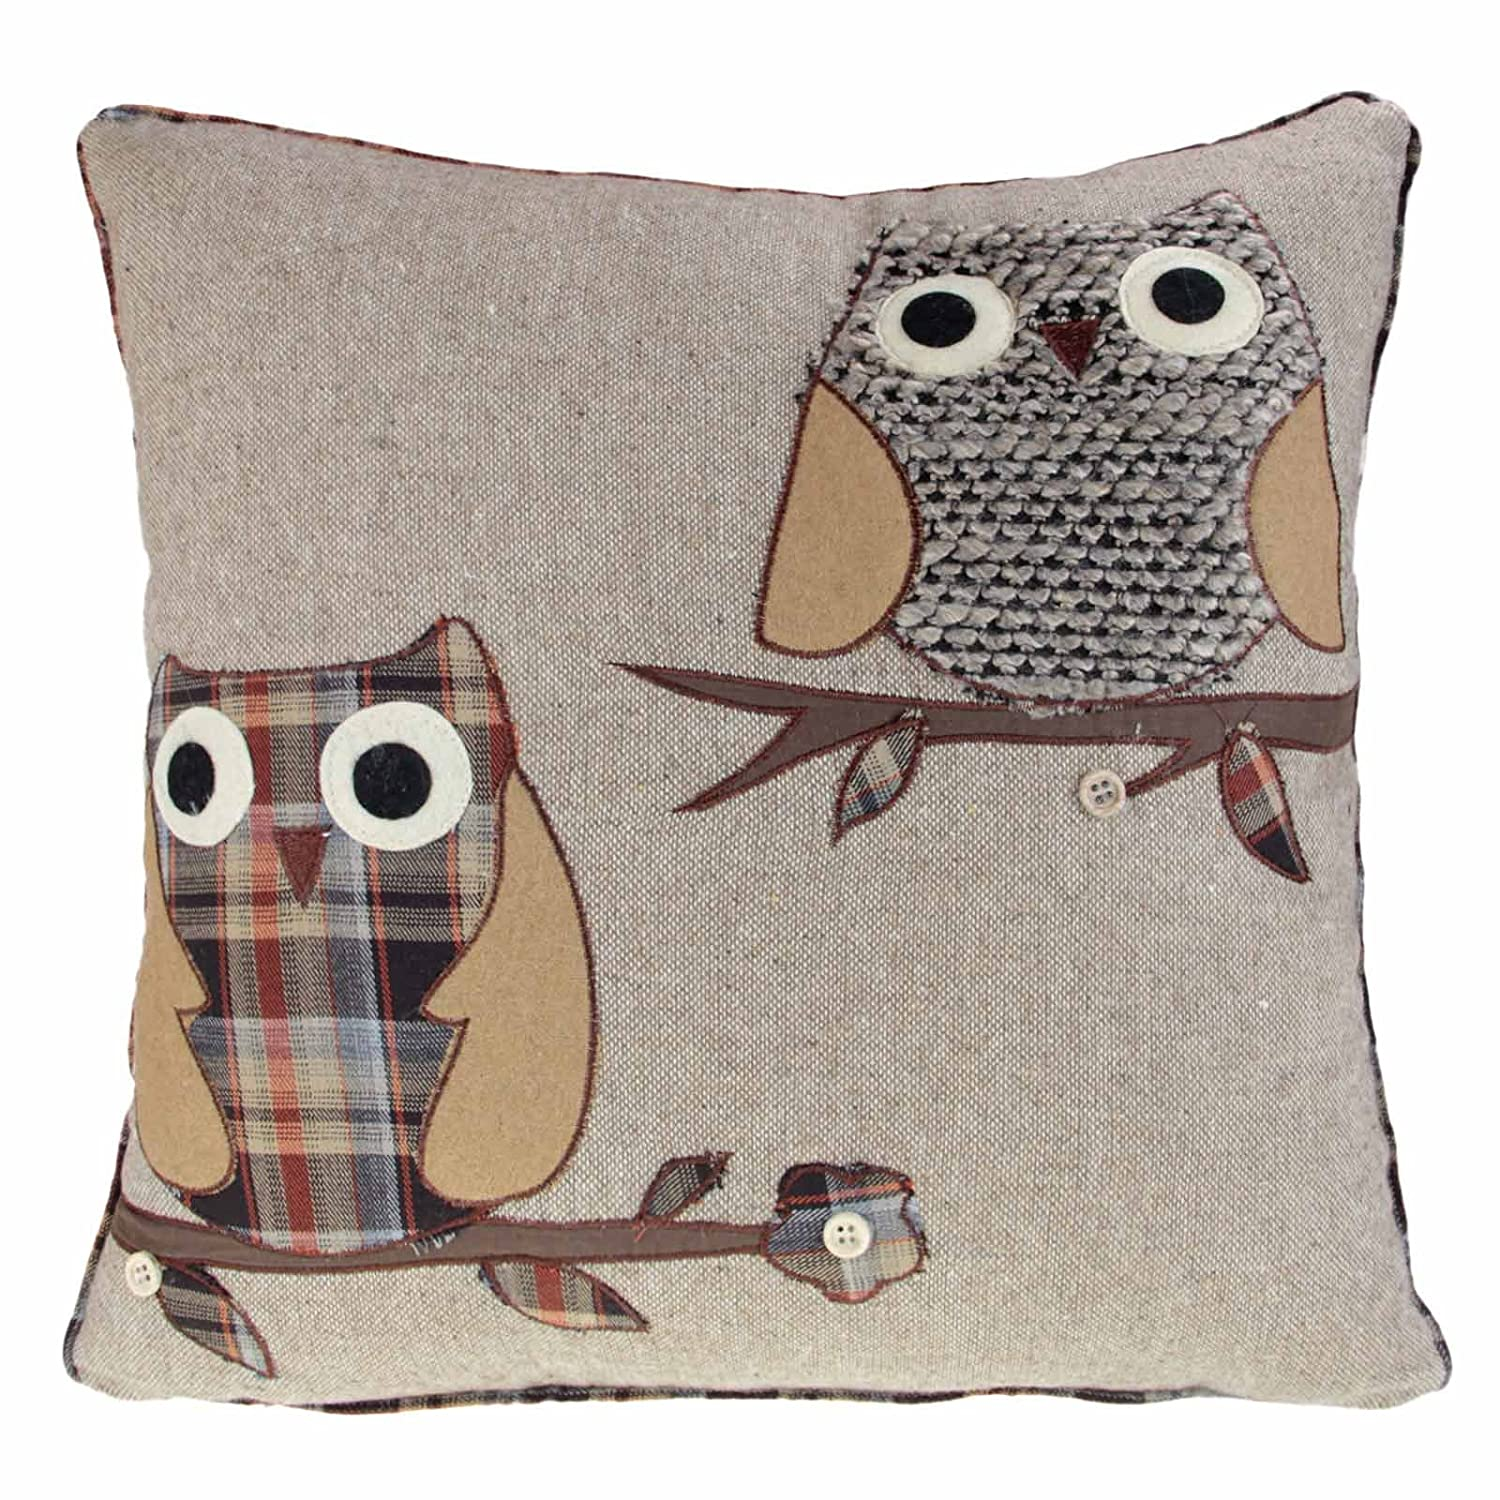 Ideal Textiles, Owl Cushion Covers, Wool Blend Cushions, Tartan Check Fabric, Luxury Piped Edges, Machine Washable, 18